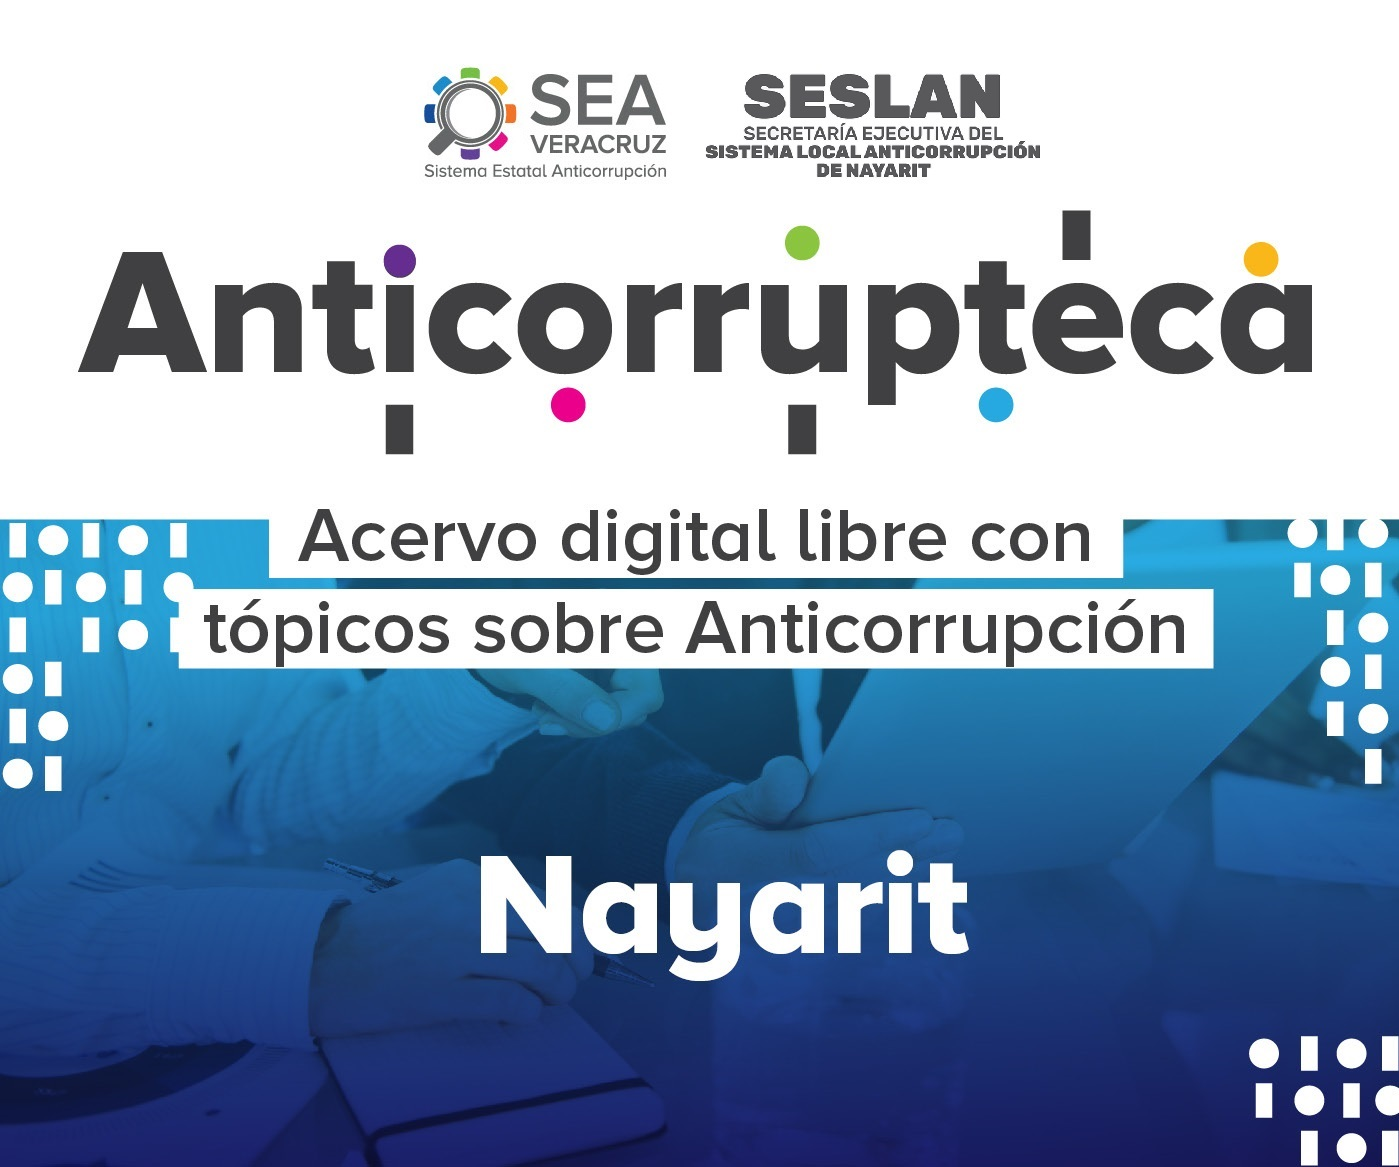 ANTICORRUPTECA_NAYARIT